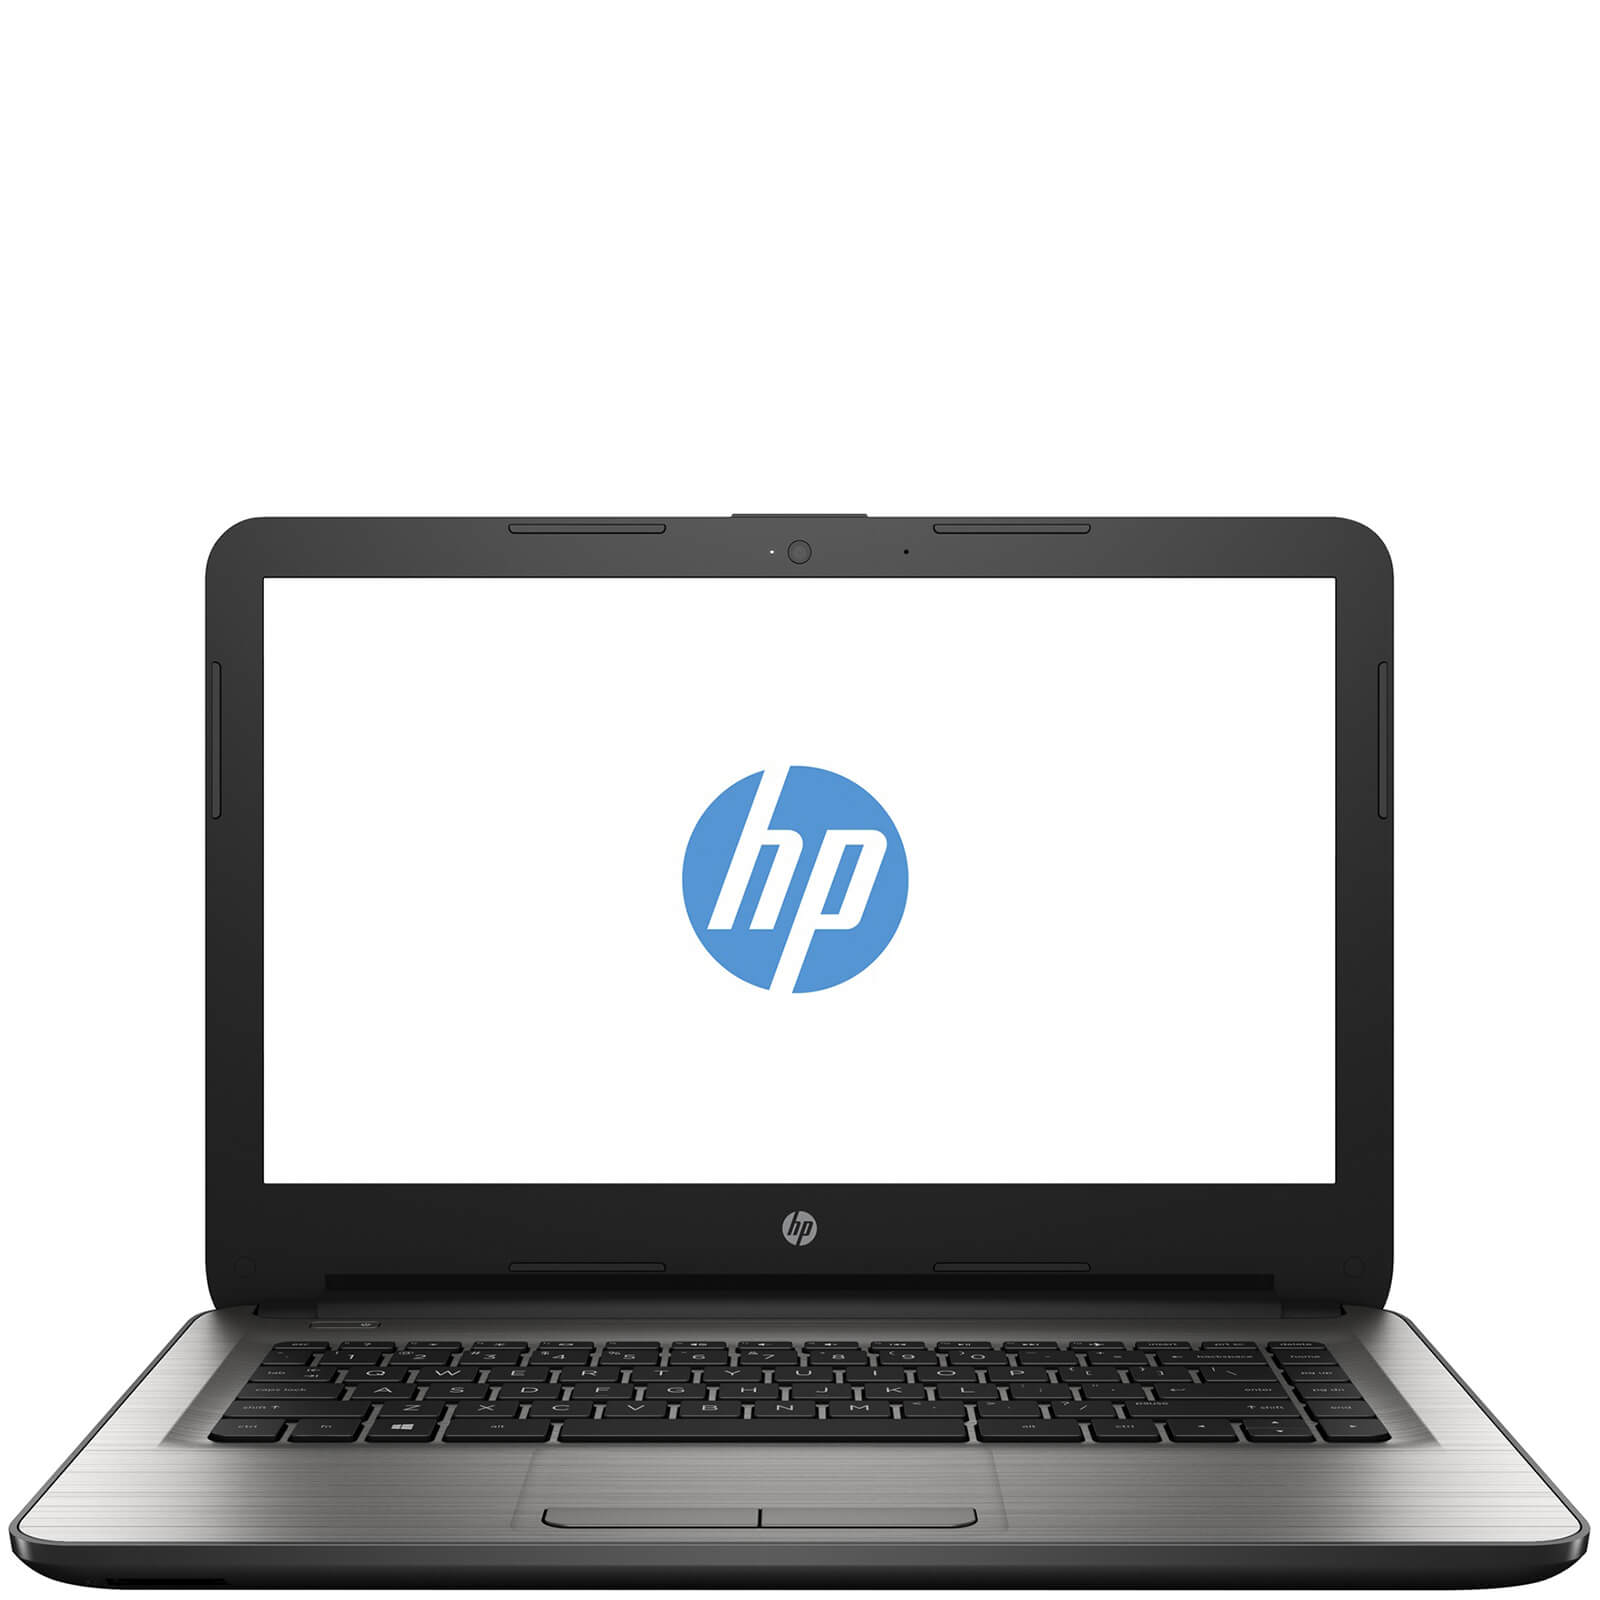 "HP 14-AM003NA 14"""" Laptop (Intel Pentium N3710, 4GB, 1TB, 1.6GHz, Windows 10) - Silver - Manufacturer Refurbished"